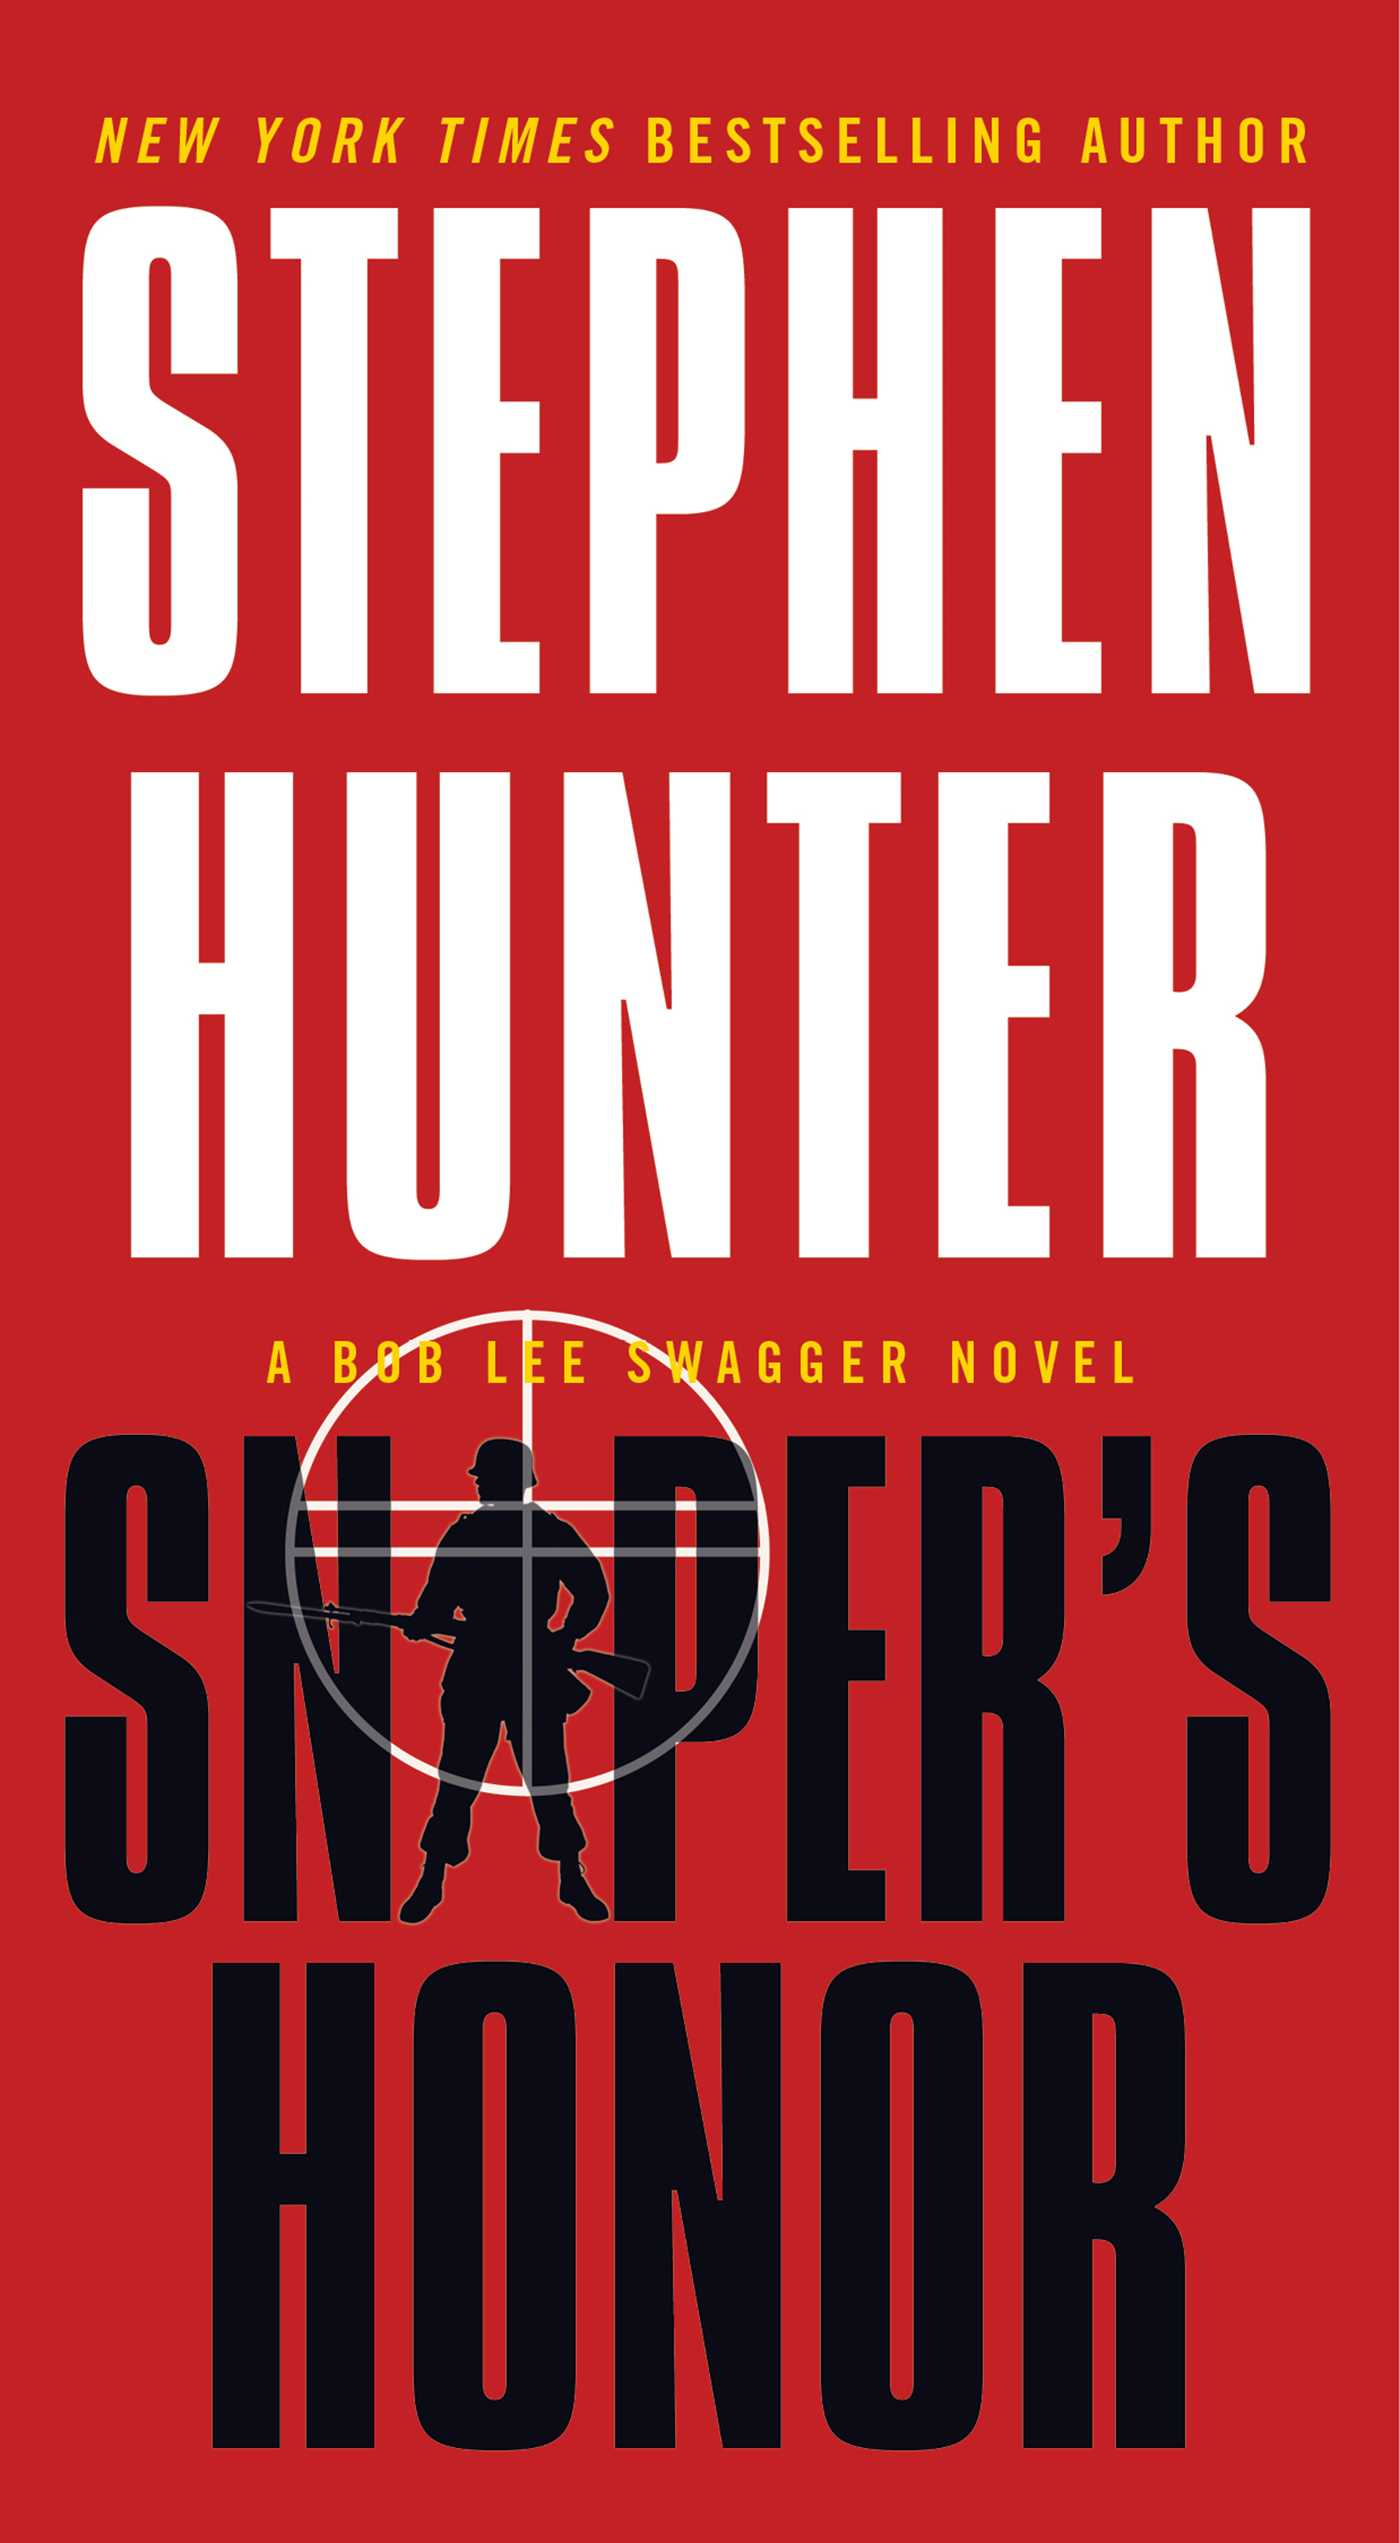 Book Cover Image (jpg): Sniper's Honor